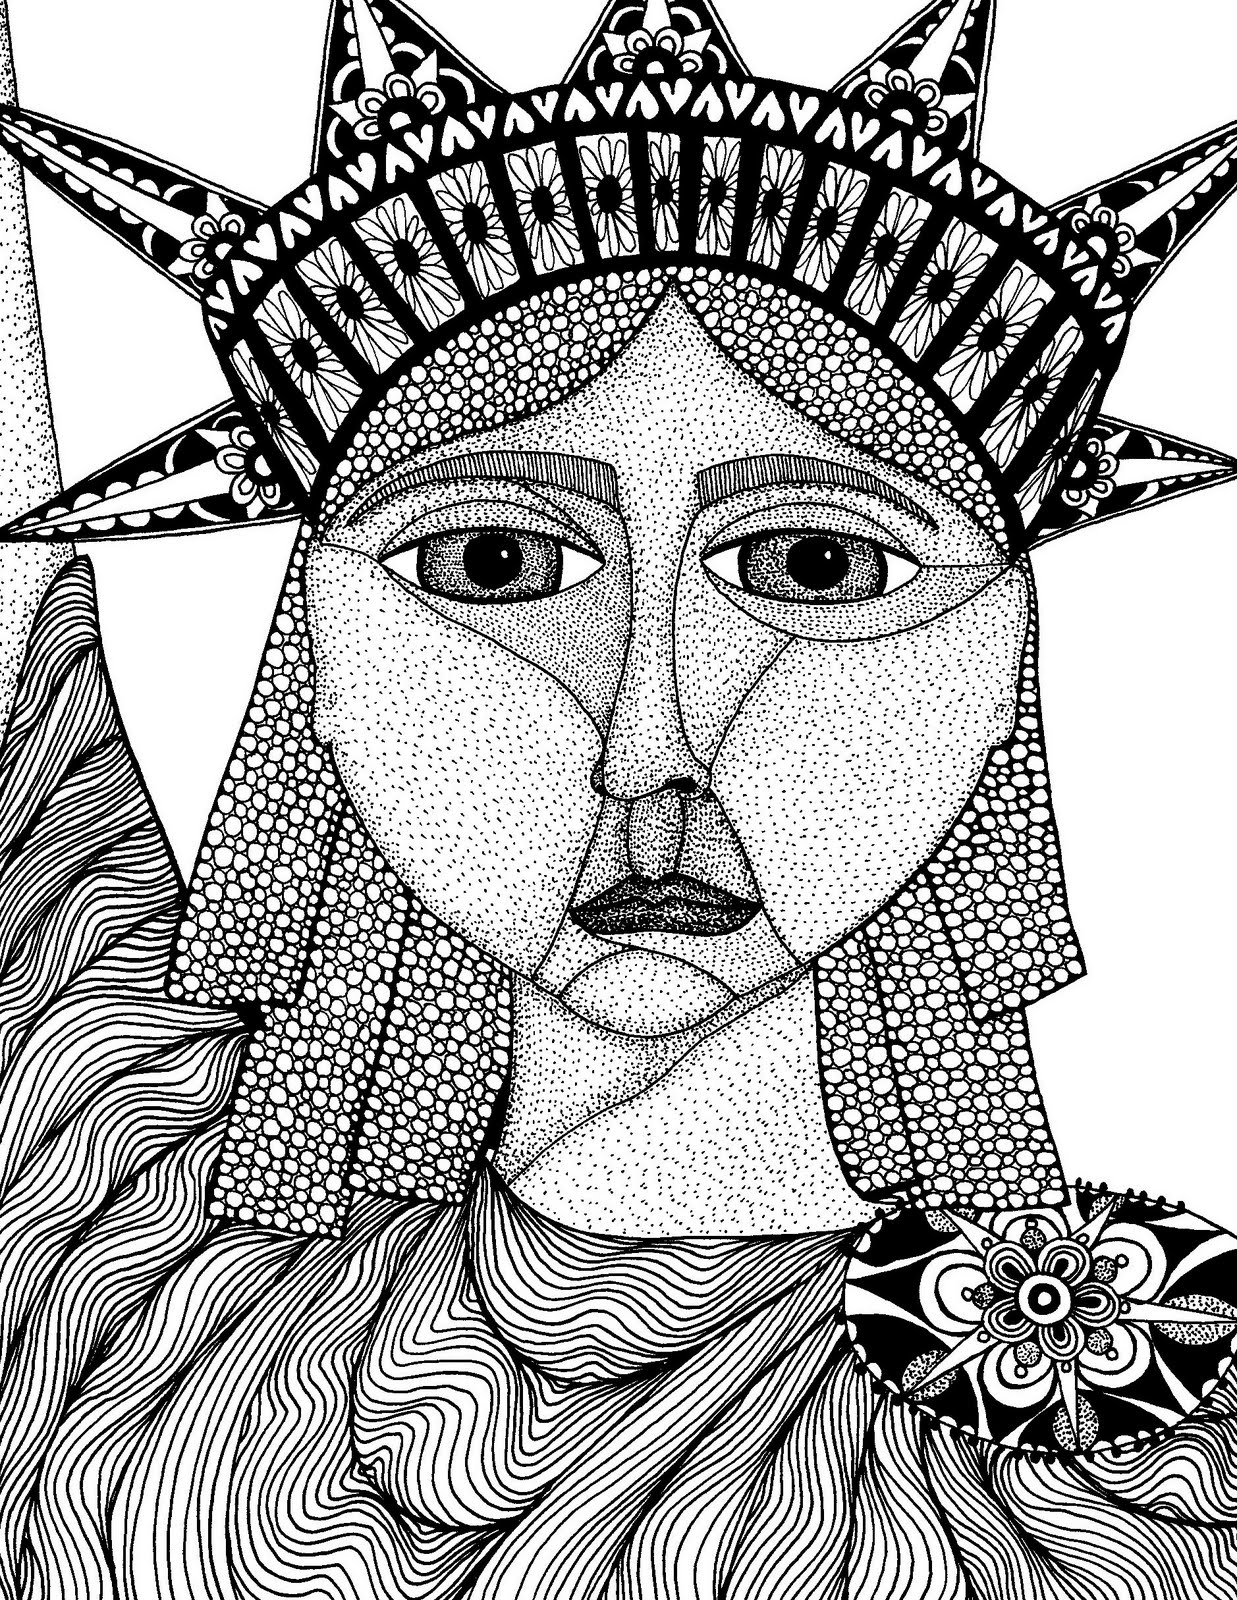 1237x1600 Pen And Ink Art Class Pen Amp Ink Artwork By Rebecca Anthony